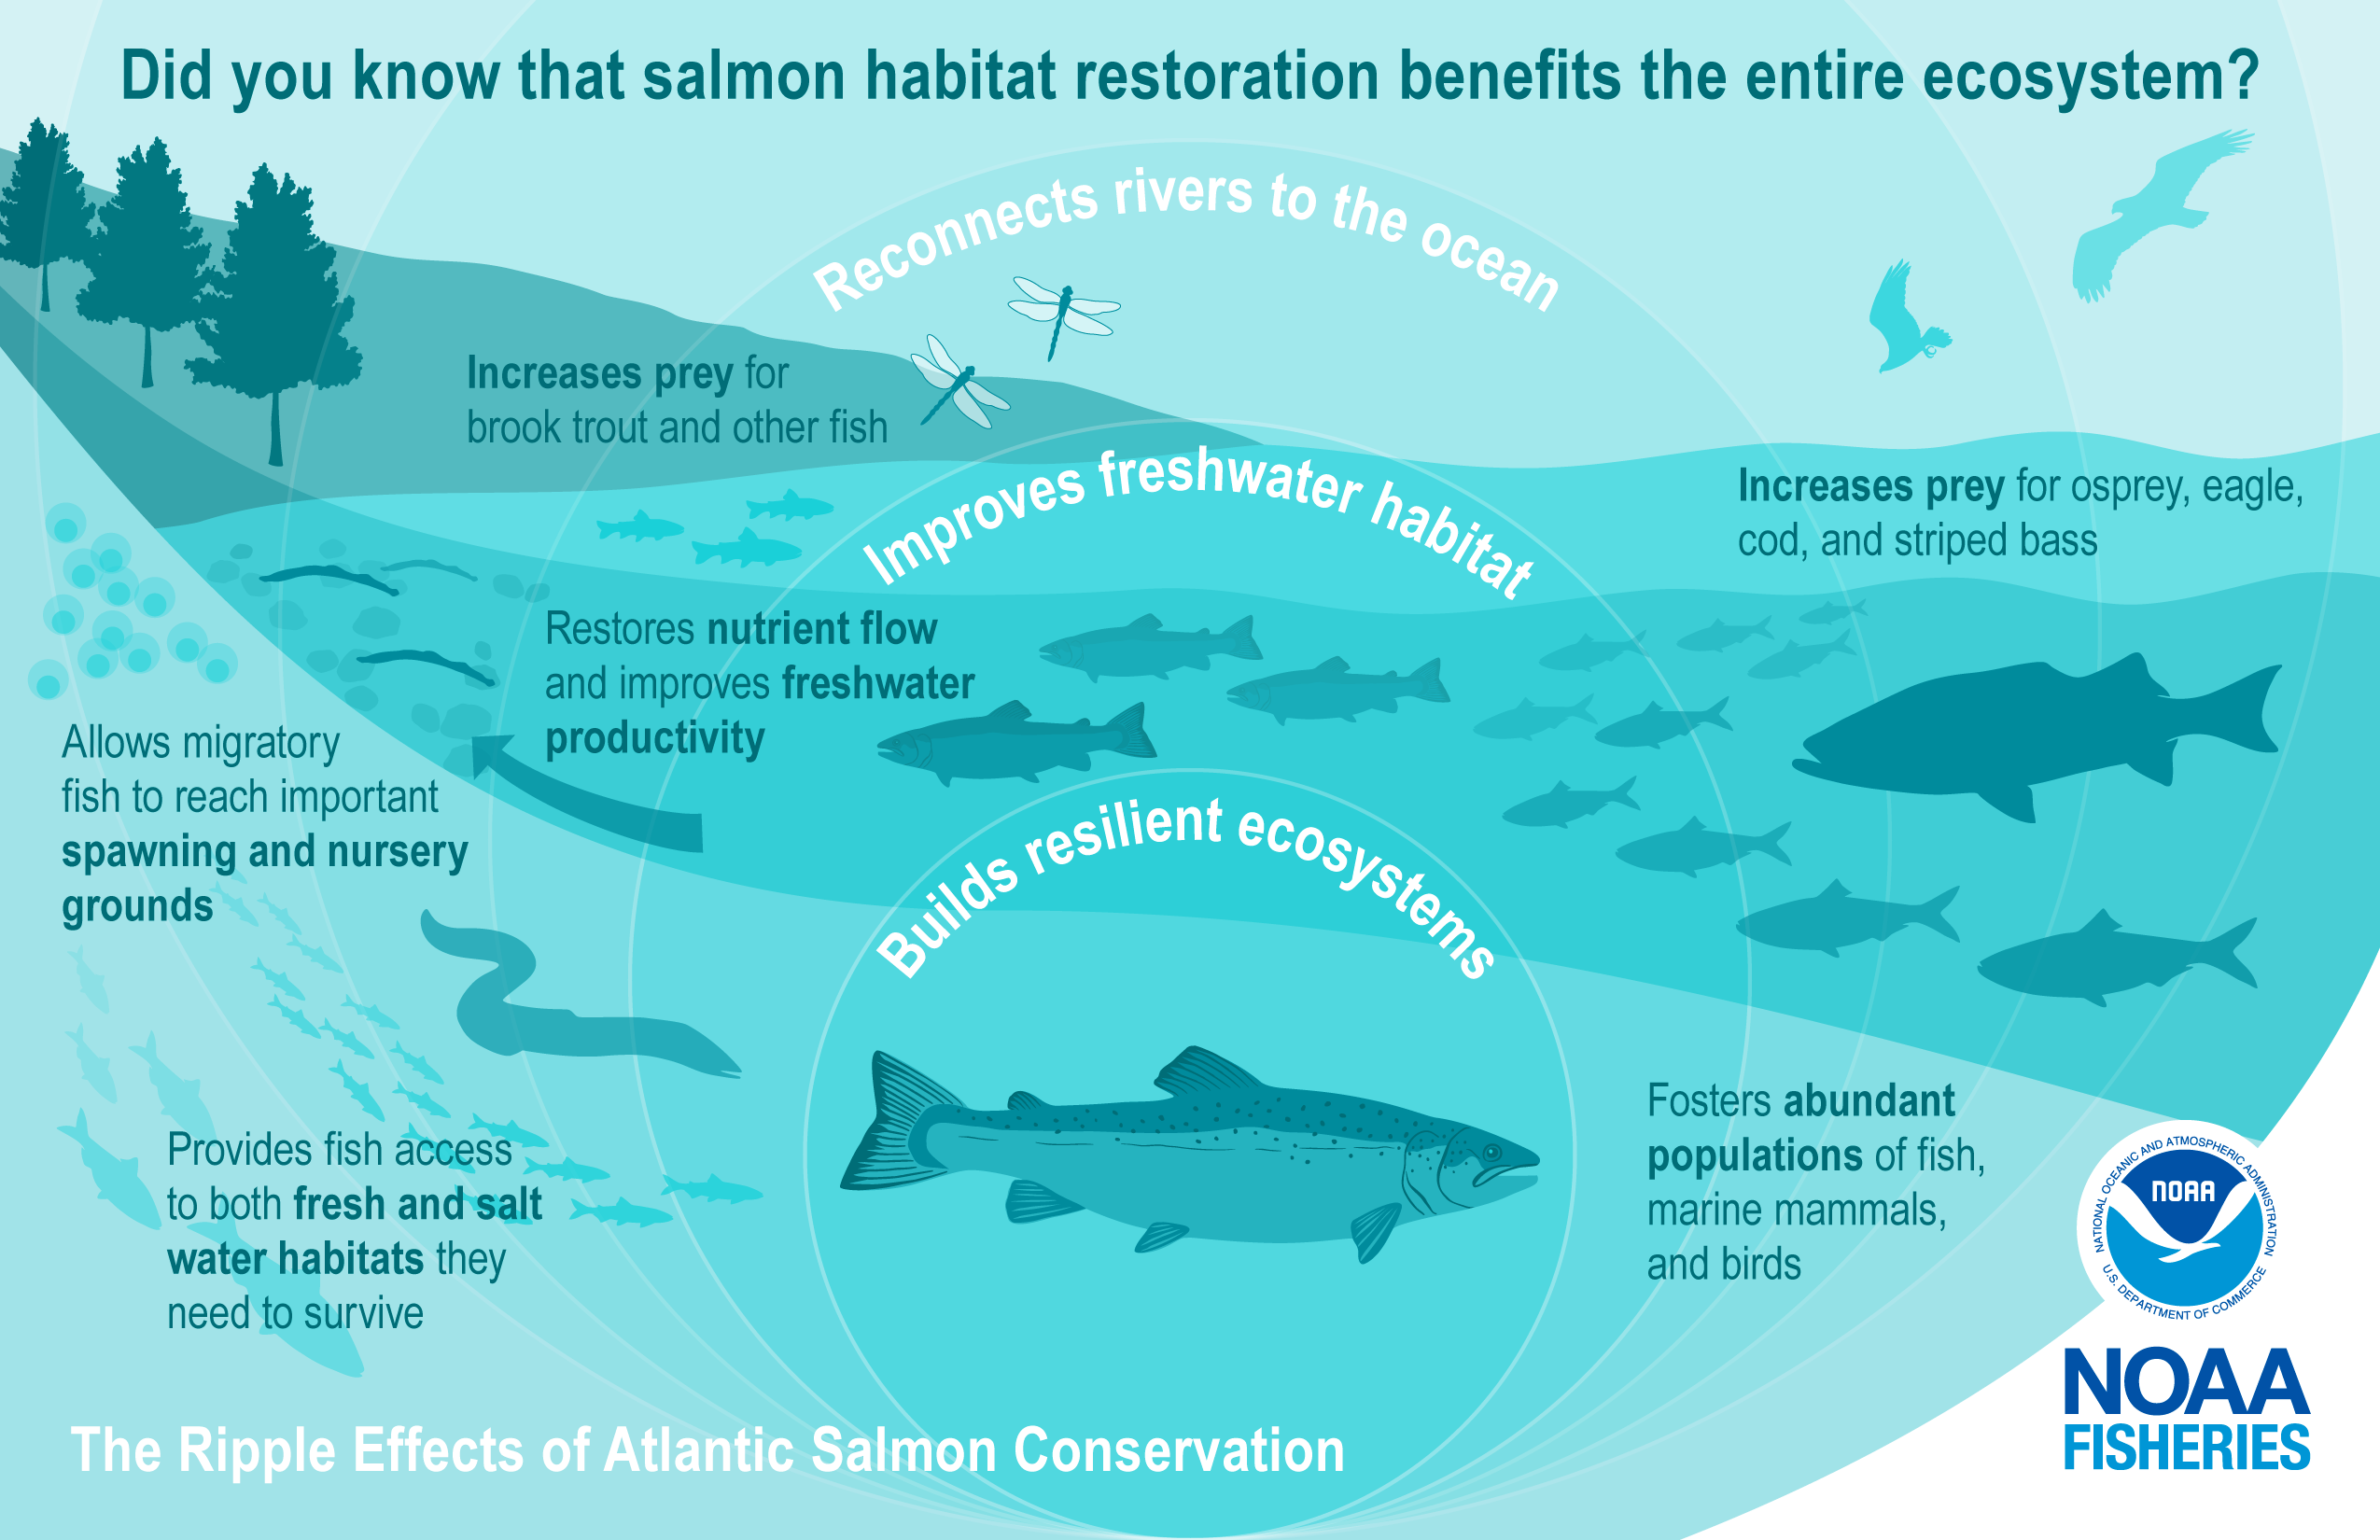 """This image is depicted in green colors and illustrates the science behind salmon conservation. It highlights examples of the """"ripple effects"""" and benefits for the environment with an illustration of expanding circles over a river connected to the ocean with an Atlantic salmon at the center. The salmon swims downstream to the right surrounded by a healthy ecosystem represented by fish eggs, smaller salmon, lamprey, dragonflies, an eel, and schooling rainbow smelt and river herring. In the background is an os"""